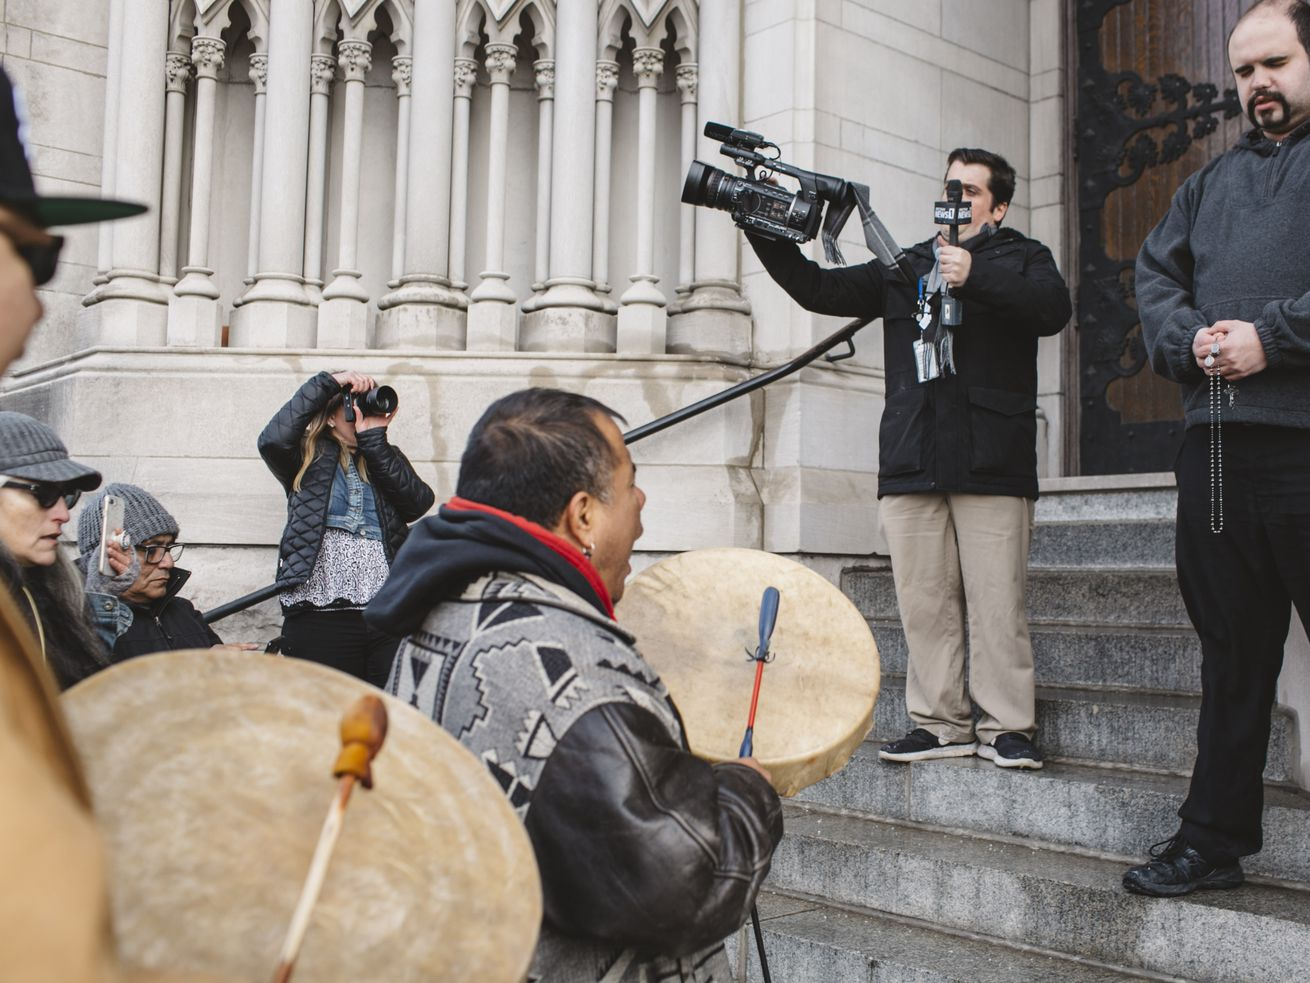 Sleepy Eye LaFromboise beats a drum as Nathaniel Hall, a diocese member, prays to a rosary, at a protest outside the Covington Catholic Diocese on January 22, 2019.